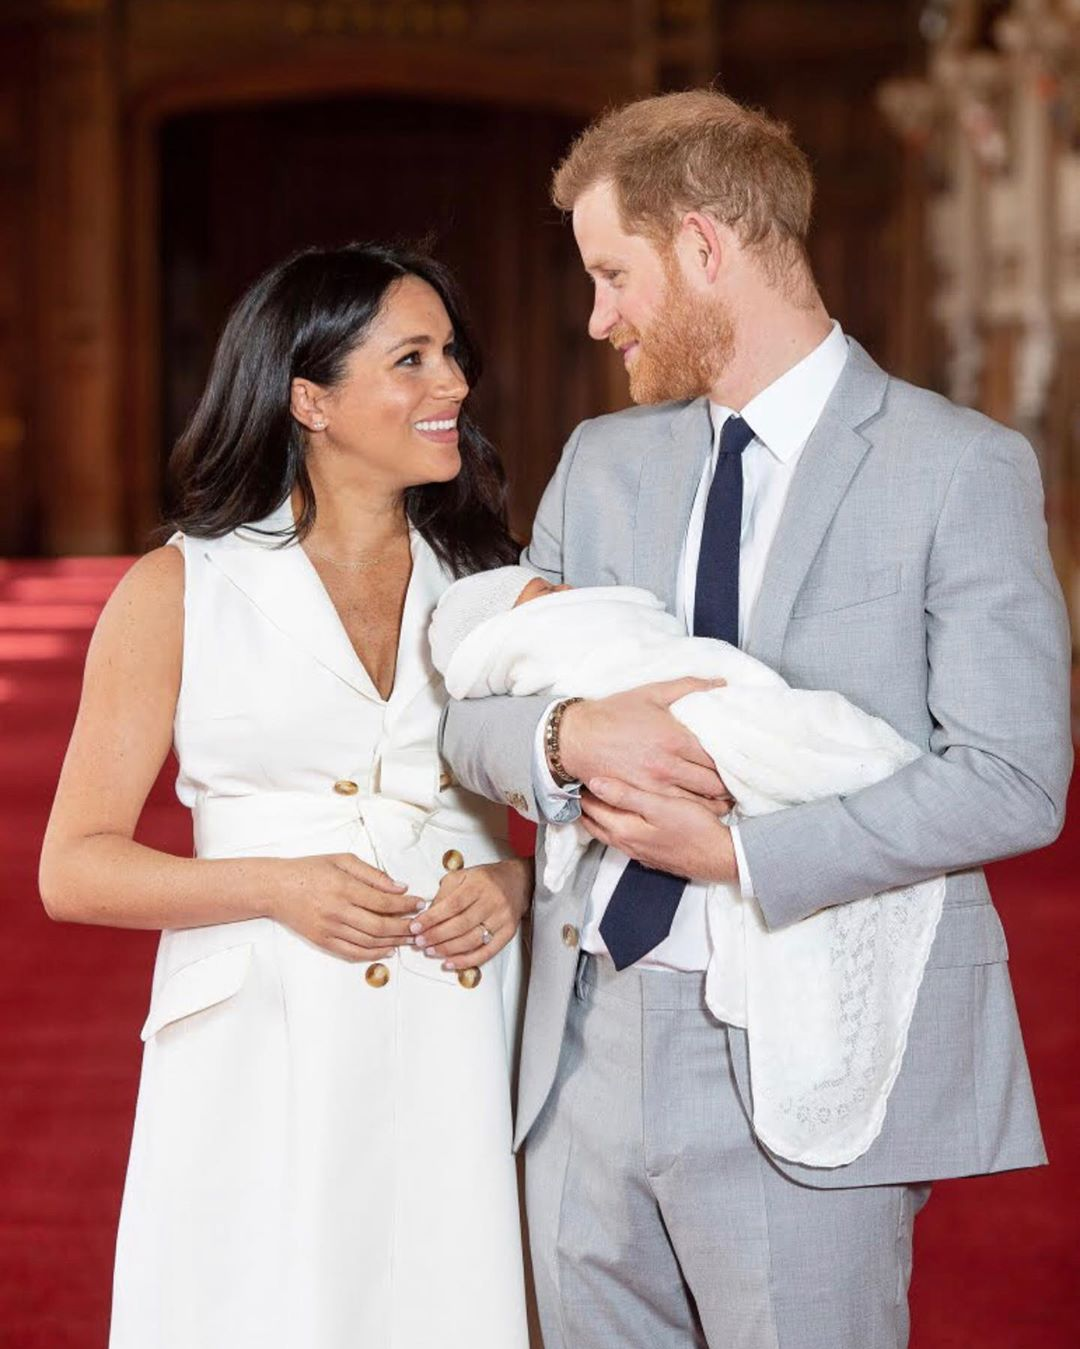 Prince Harry And Meghan Markle Introduce Baby Sussex Archie